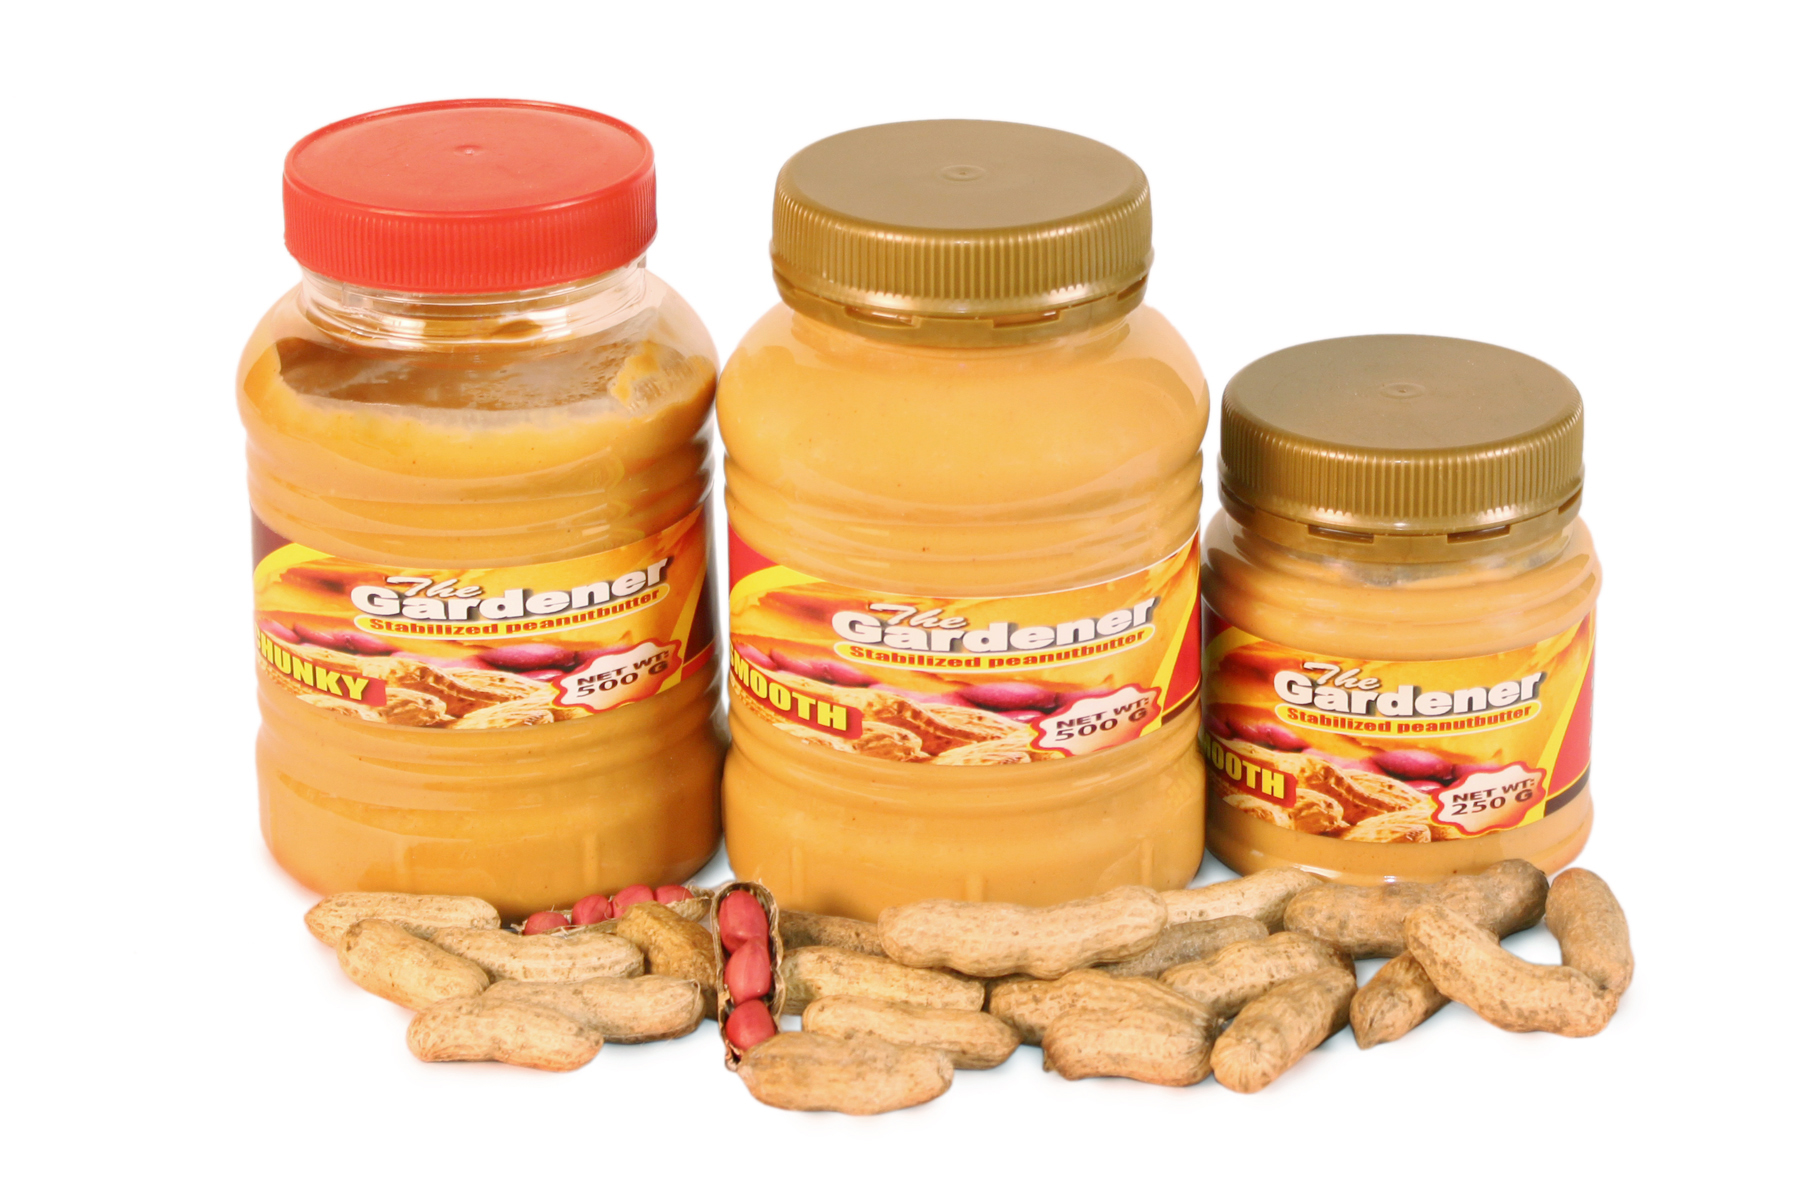 The Gardener Peanut Butter (500 gm)